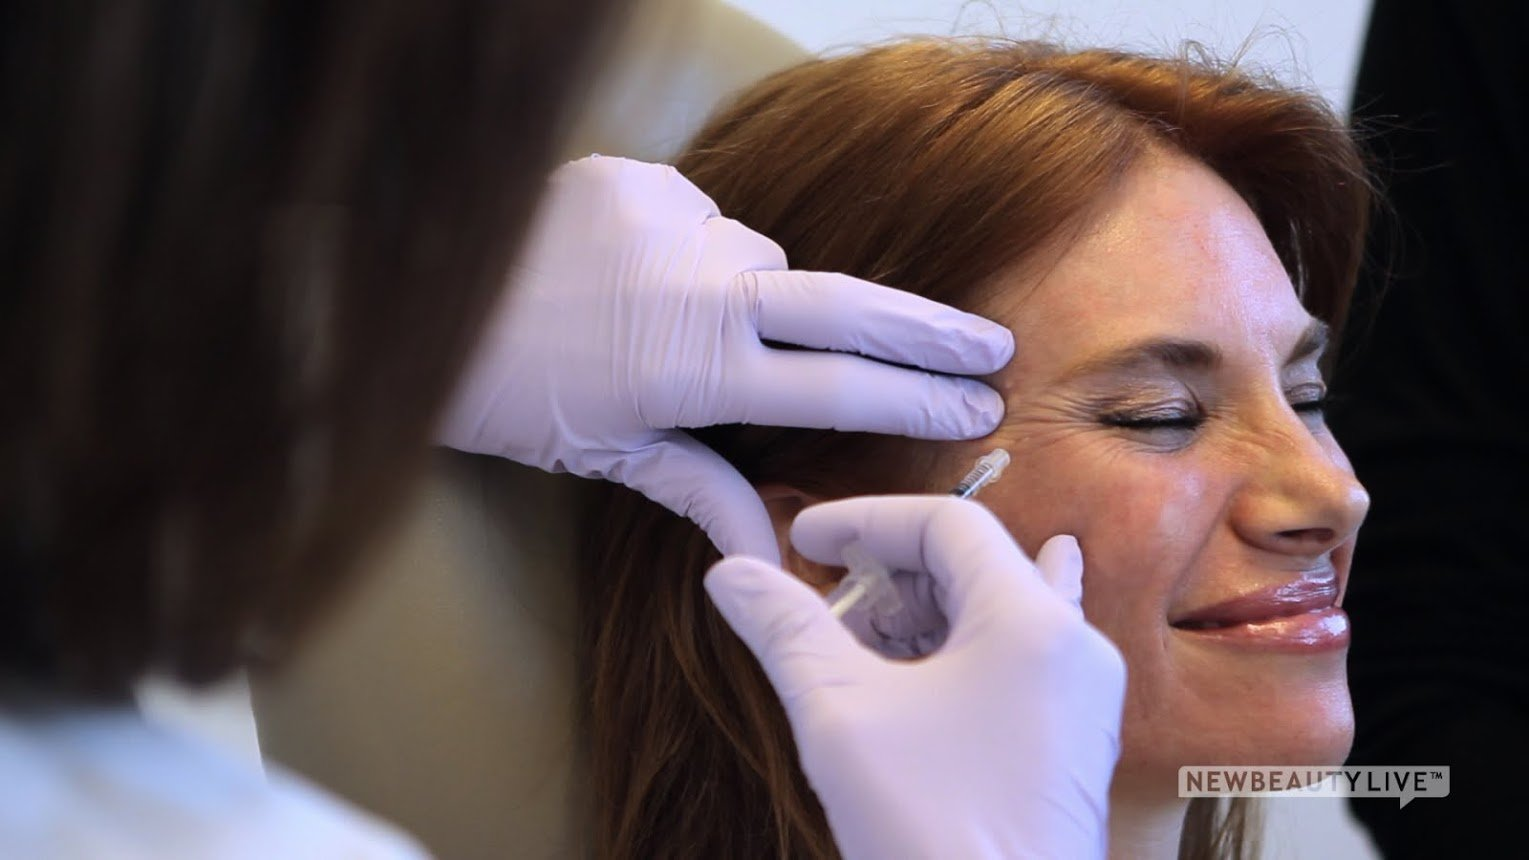 3 Women Try Botox For First Time